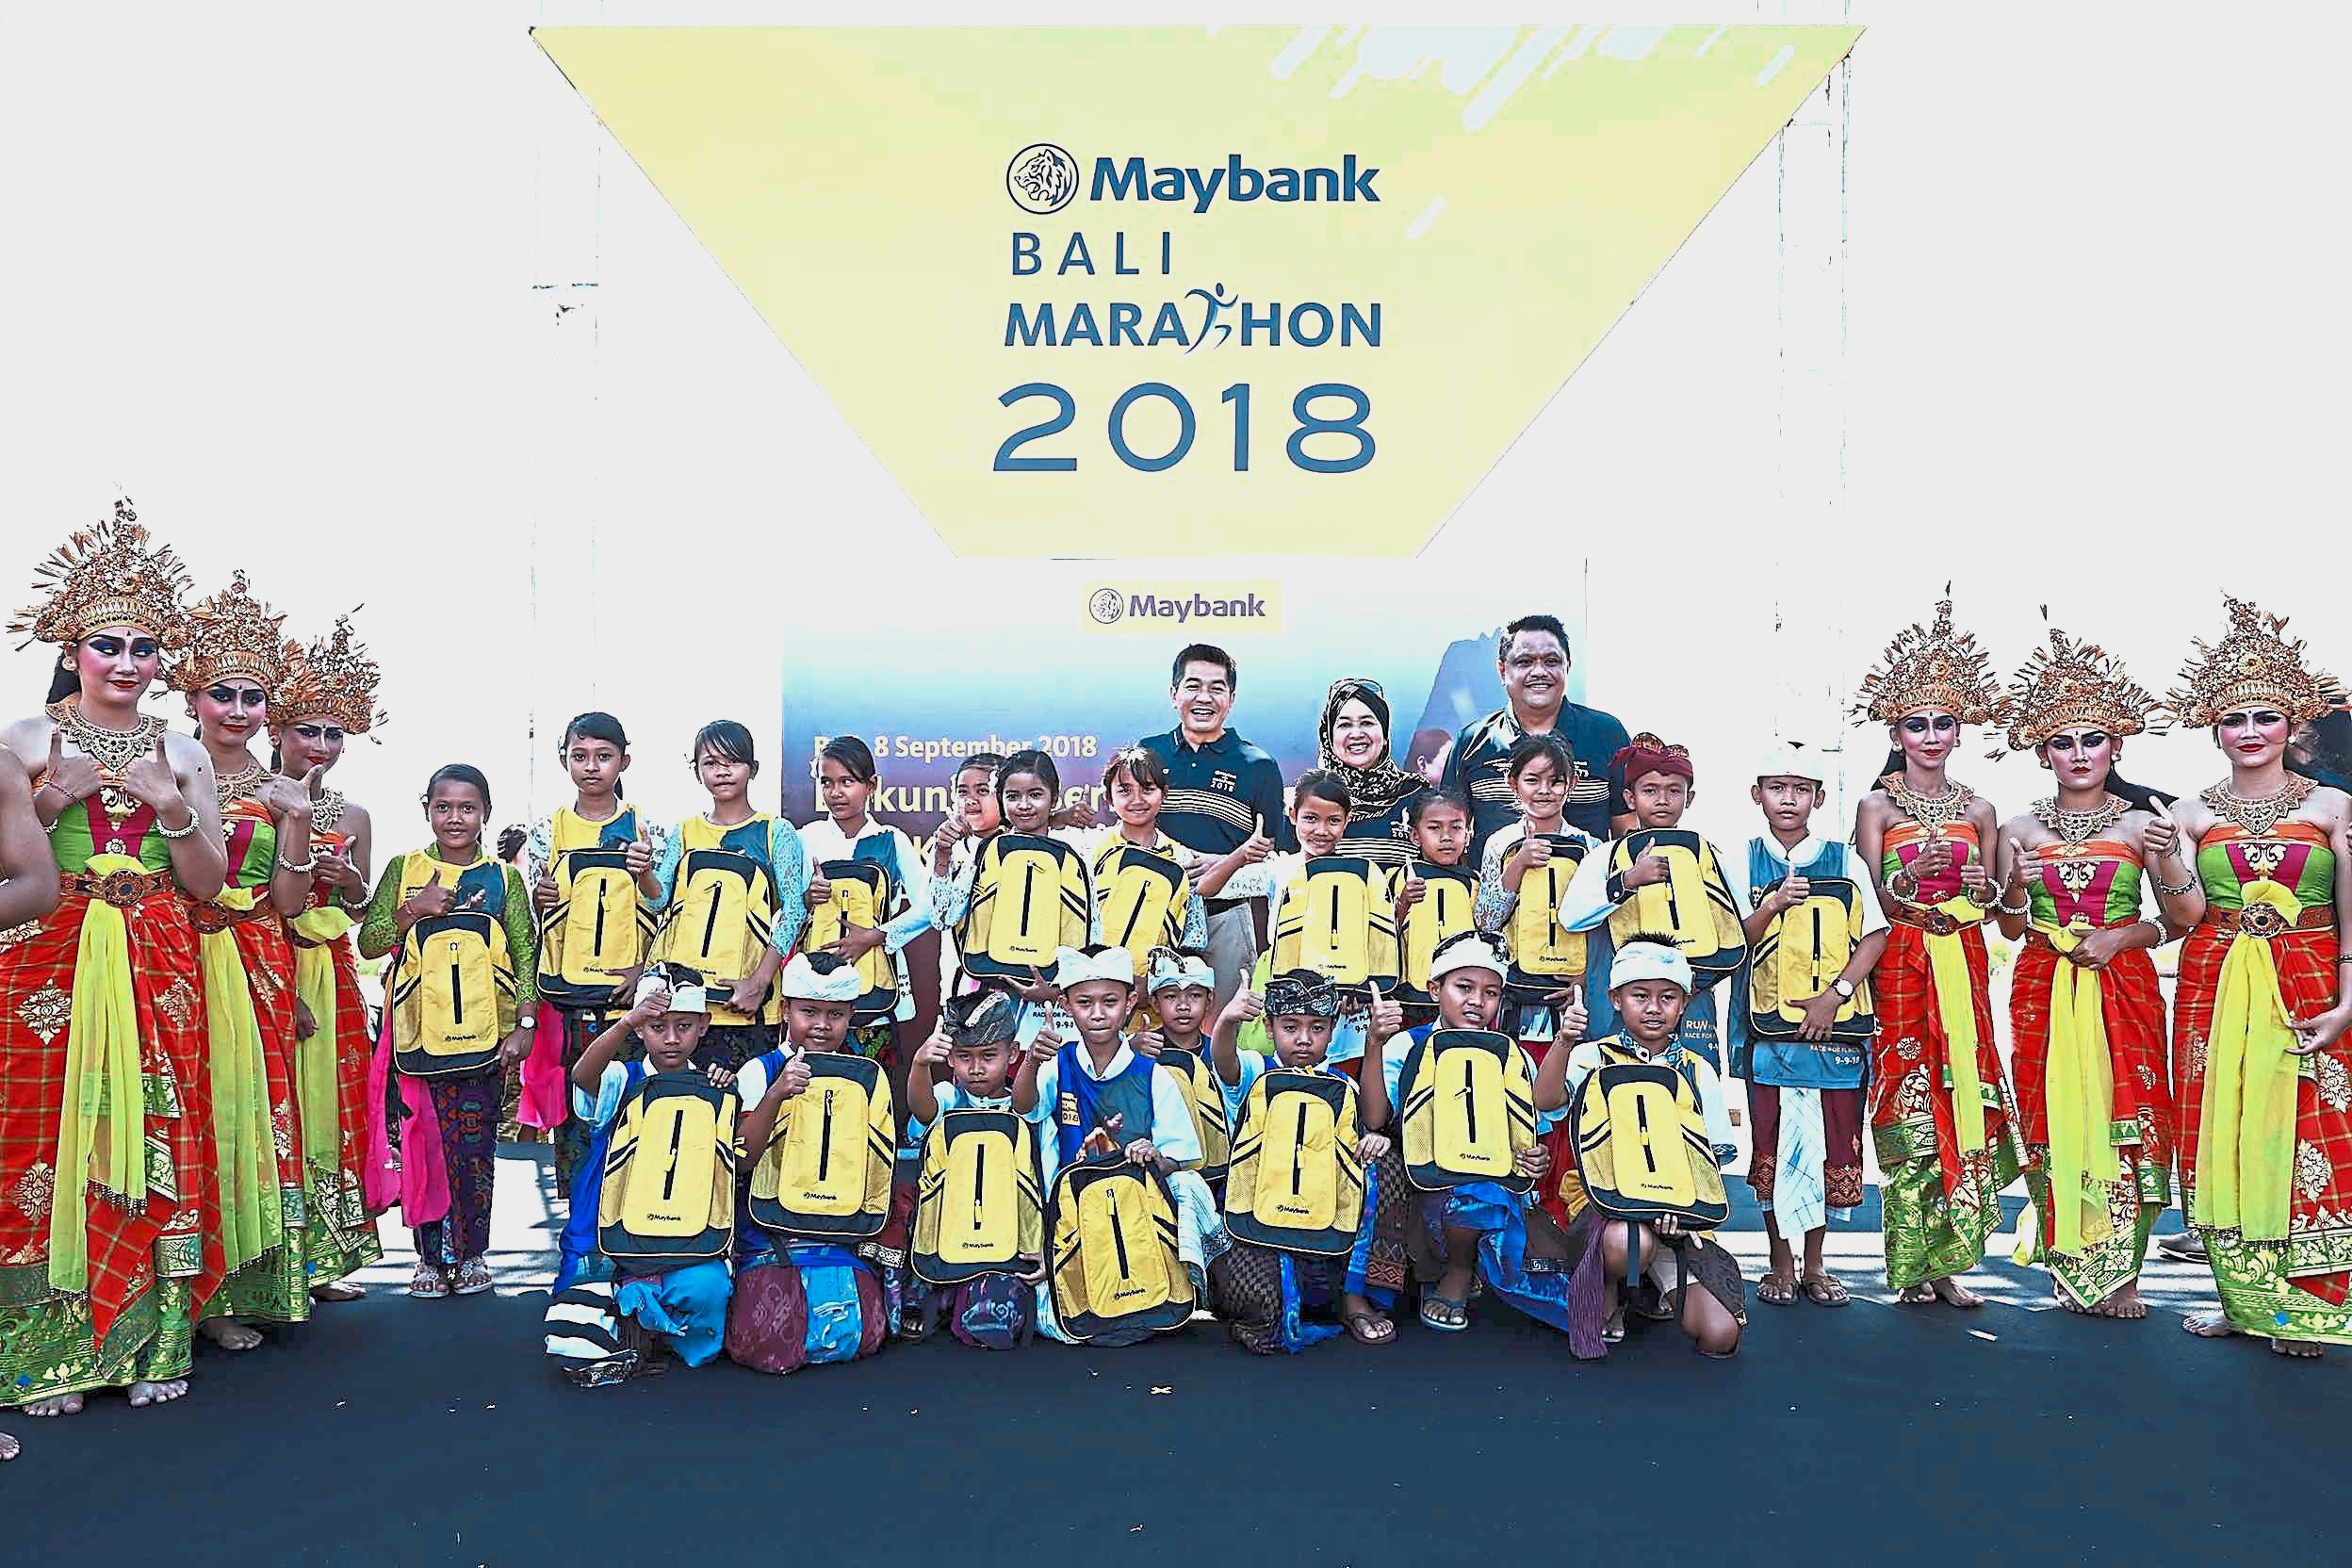 Maybank roped in 4,500 students and 172 teachers to help out along the race route. They extended their support to earthquake victims in the form of cash 350mil rupiah (RM100,000) for the Lombok rehabilitation programme.